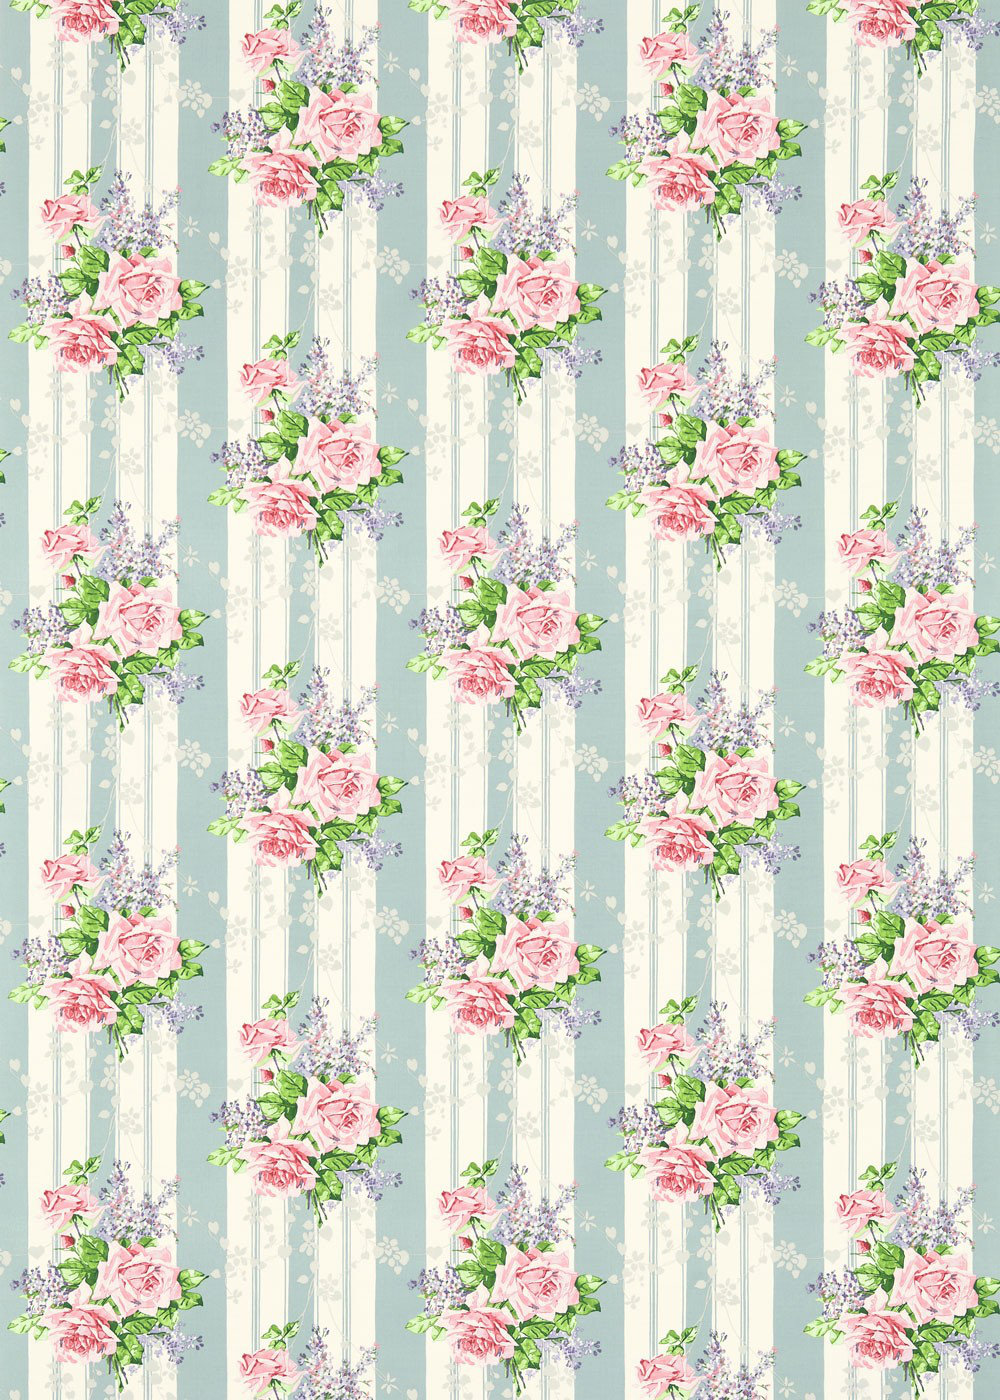 Sanderson Fabric Cecile Rose 224326